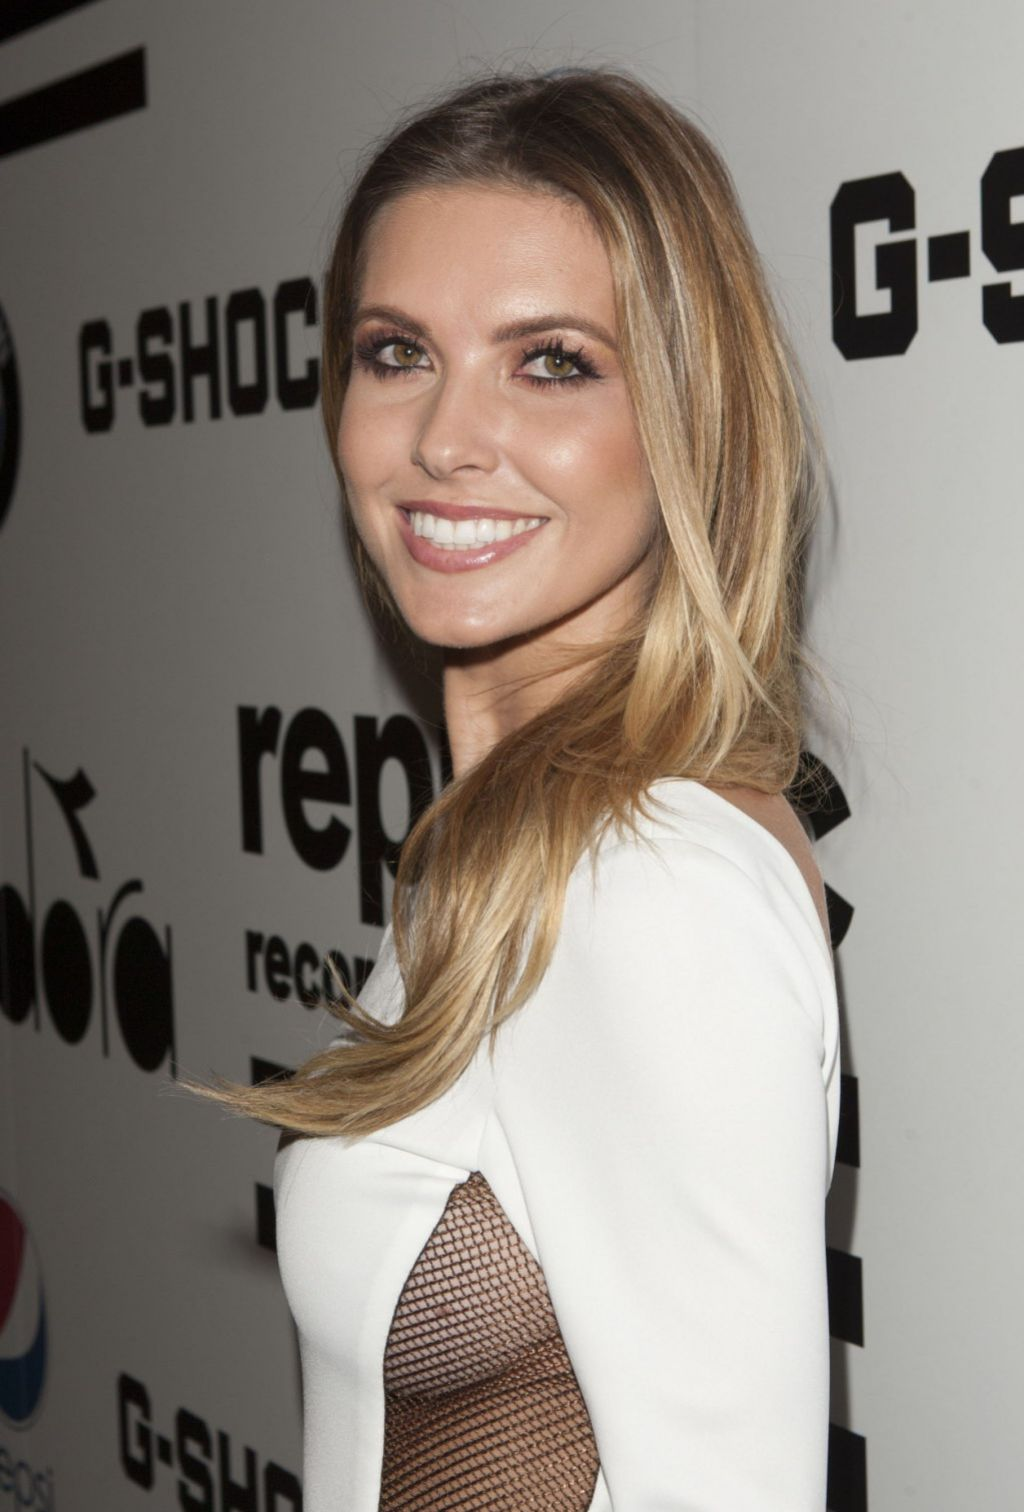 Audrina Patridge - Republic Records GRAMMY Party, January 2014